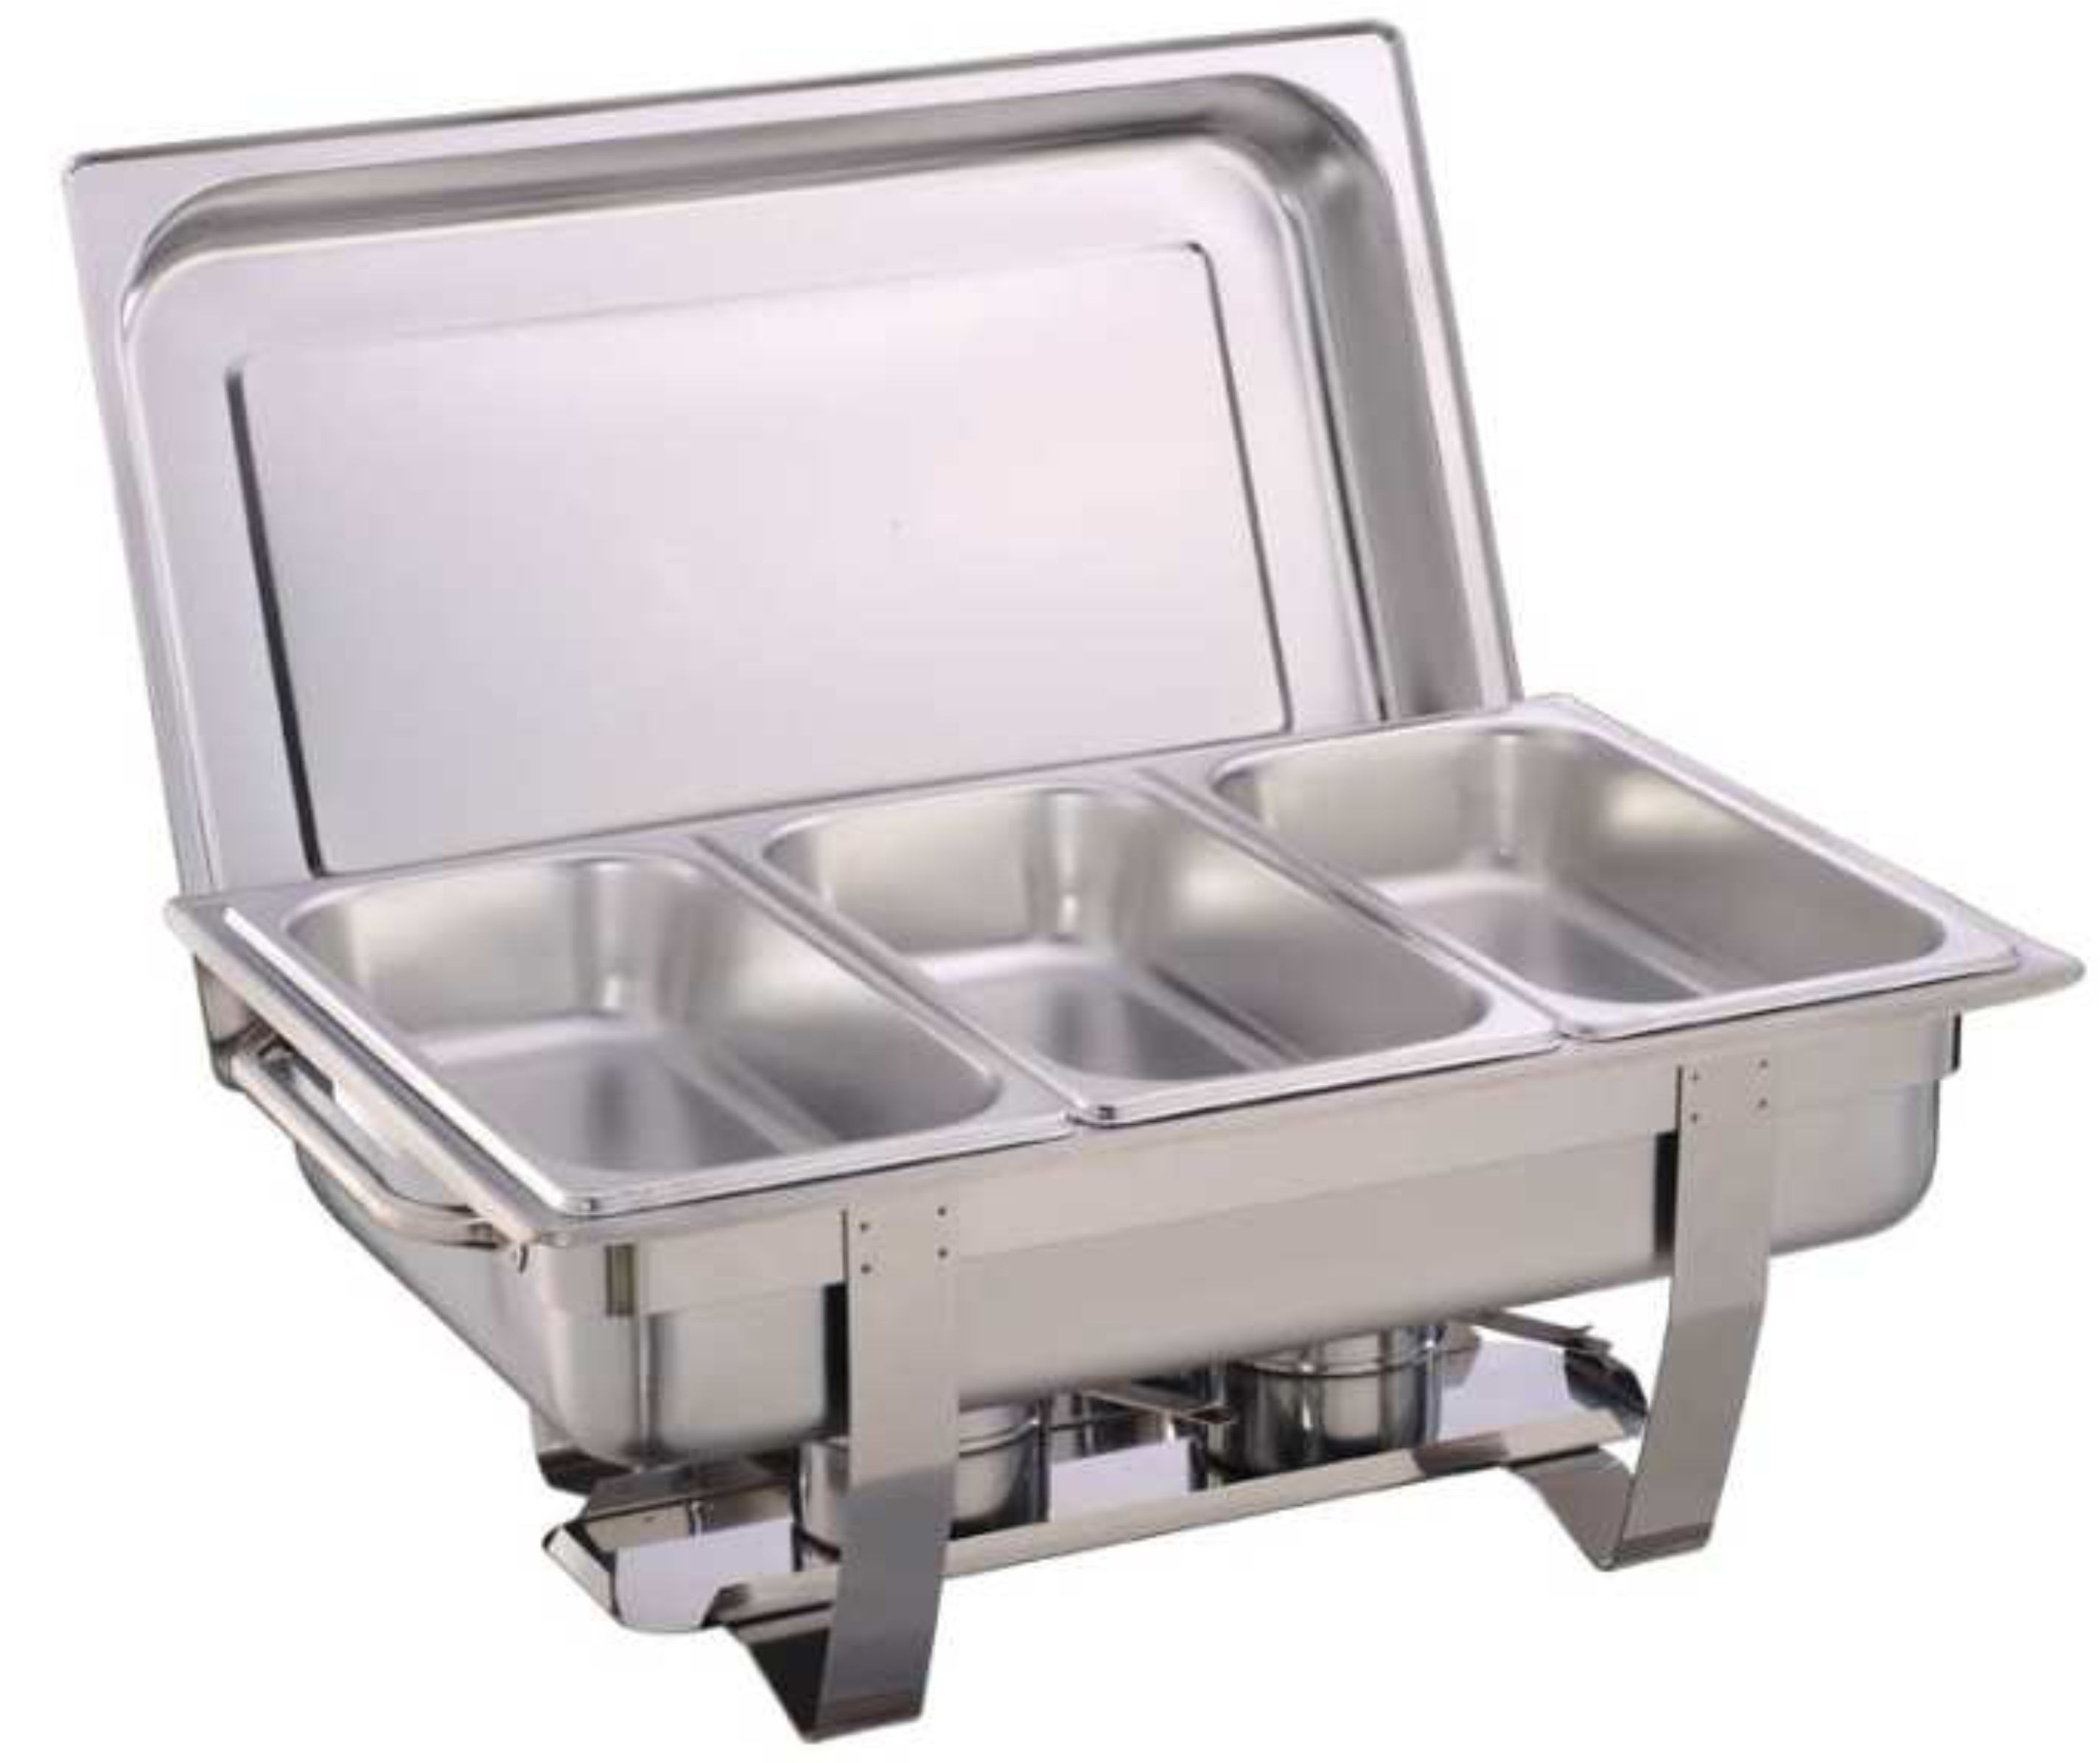 Chafingdish Inzetbak 1 3 Gastronorm Rooijakkers Party Events